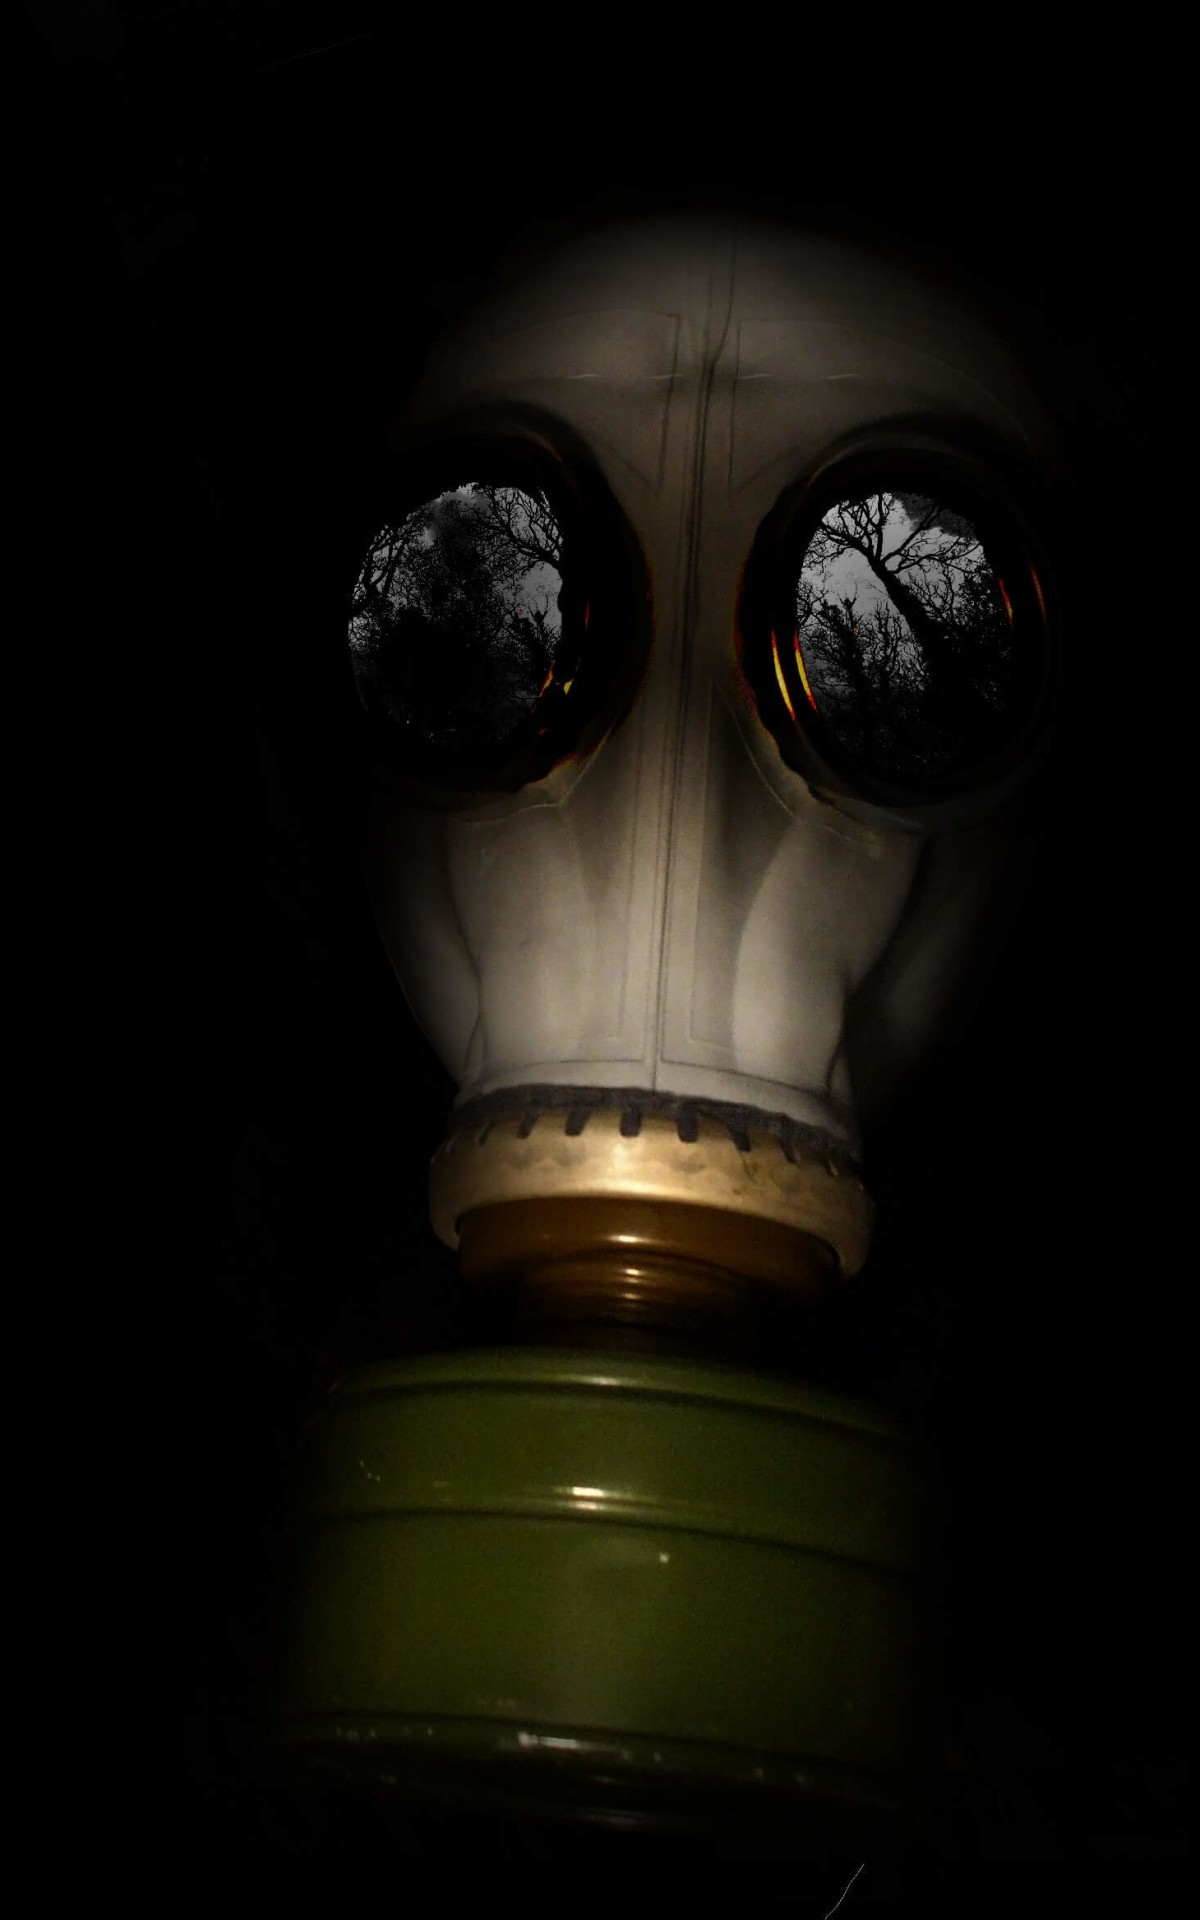 WWII Gas Mask Wallpaper for Amazon Kindle Fire HDX